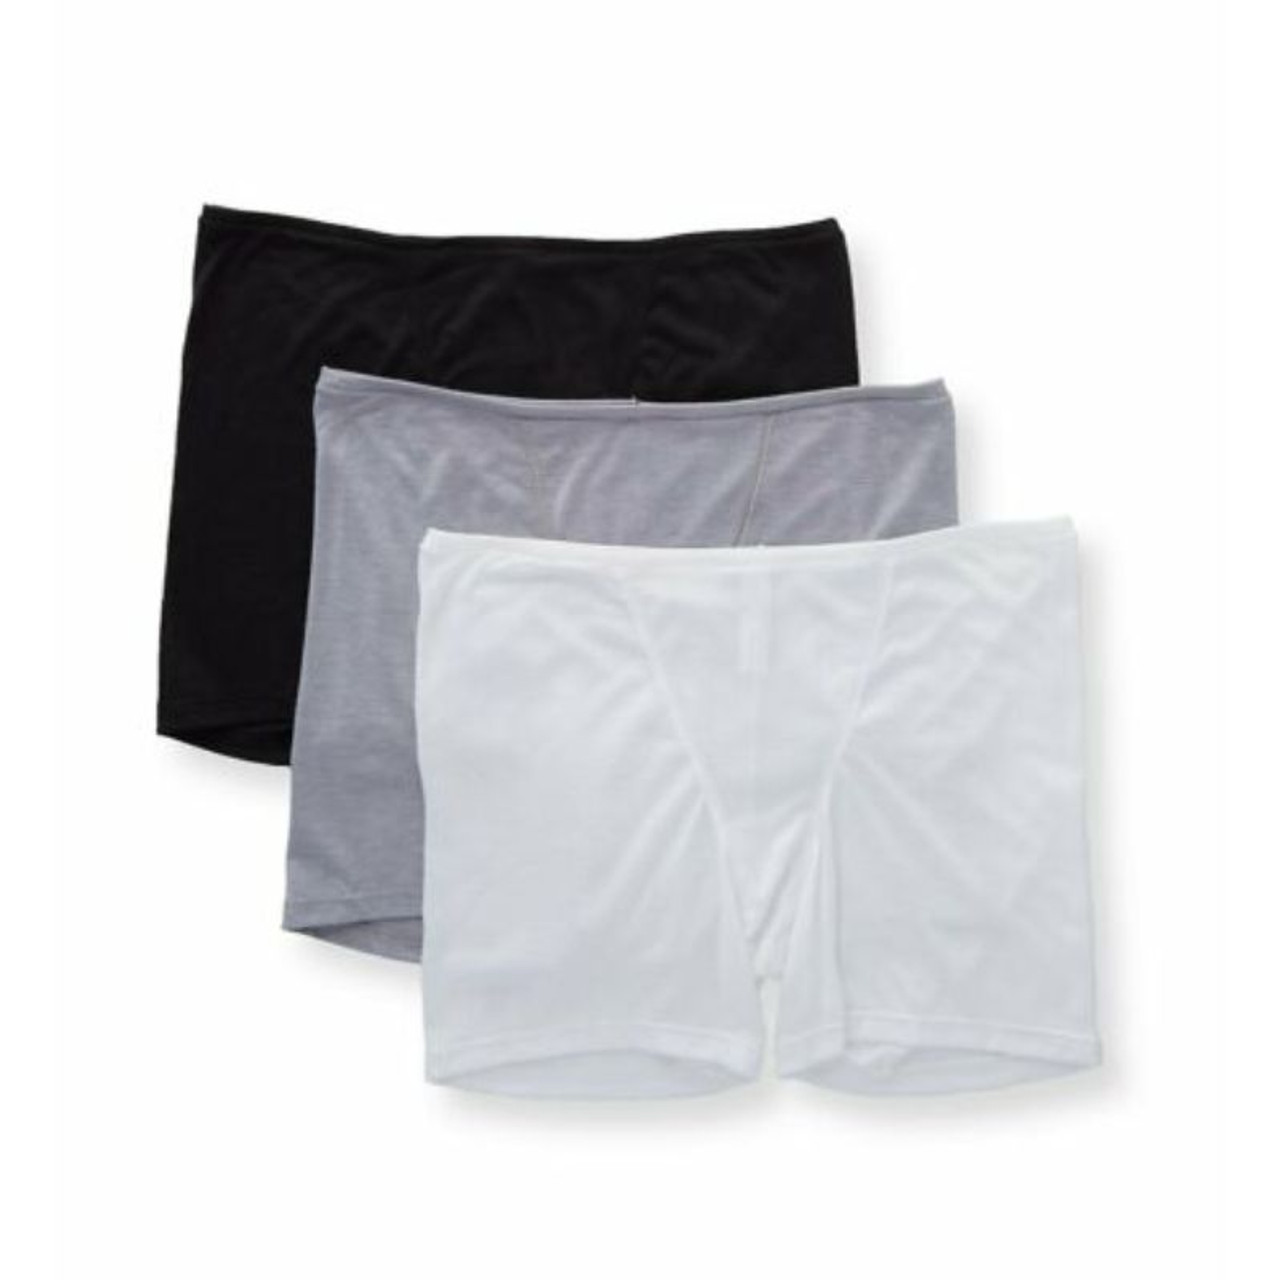 Hanes Ultimate Women's ComfortSoft Lounge Boxer Briefs - 6 Pack